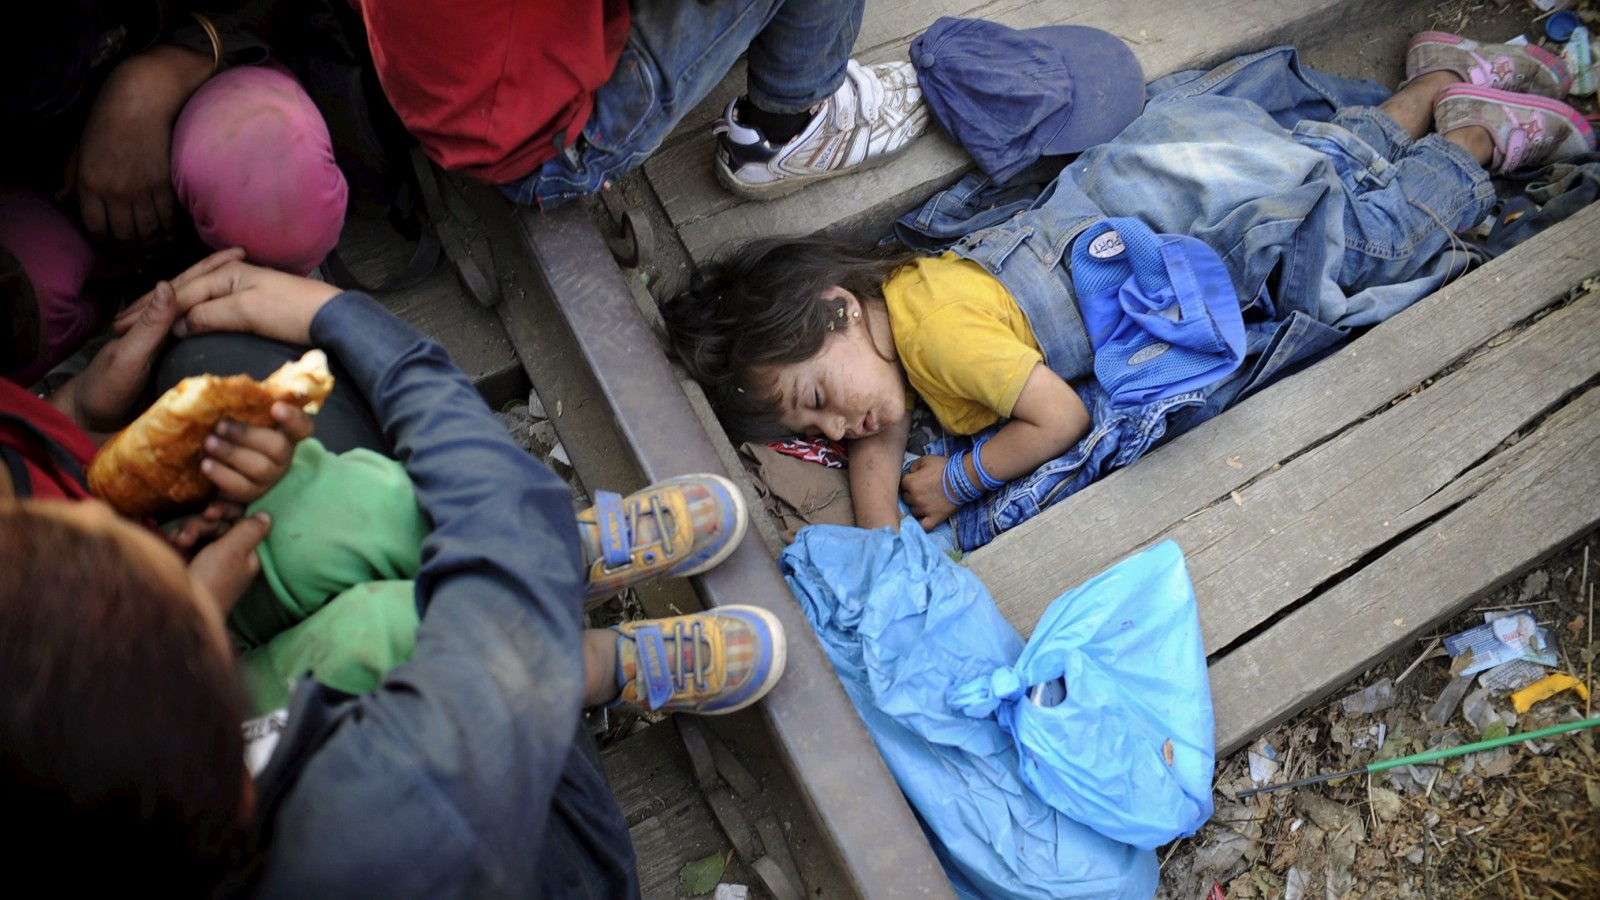 Four-year-old Rashida from Kobani, Syria, part of a new group of more than a thousand immigrants, sleeps as they wait at border line of Macedonia and Greece to enter into Macedonia near Gevgelija railway station August 20, 2015. Thousands of migrants kept up the wait on in a small Macedonian town in the hope of travelling onwards to Western Europe. After days of crowds overwhelming the small station at Gevgelija, Macedonian authorities have established special trains for migrants from south to the northern border with Serbia. REUTERS/Ognen Teofilovski  - RTX1OVRO